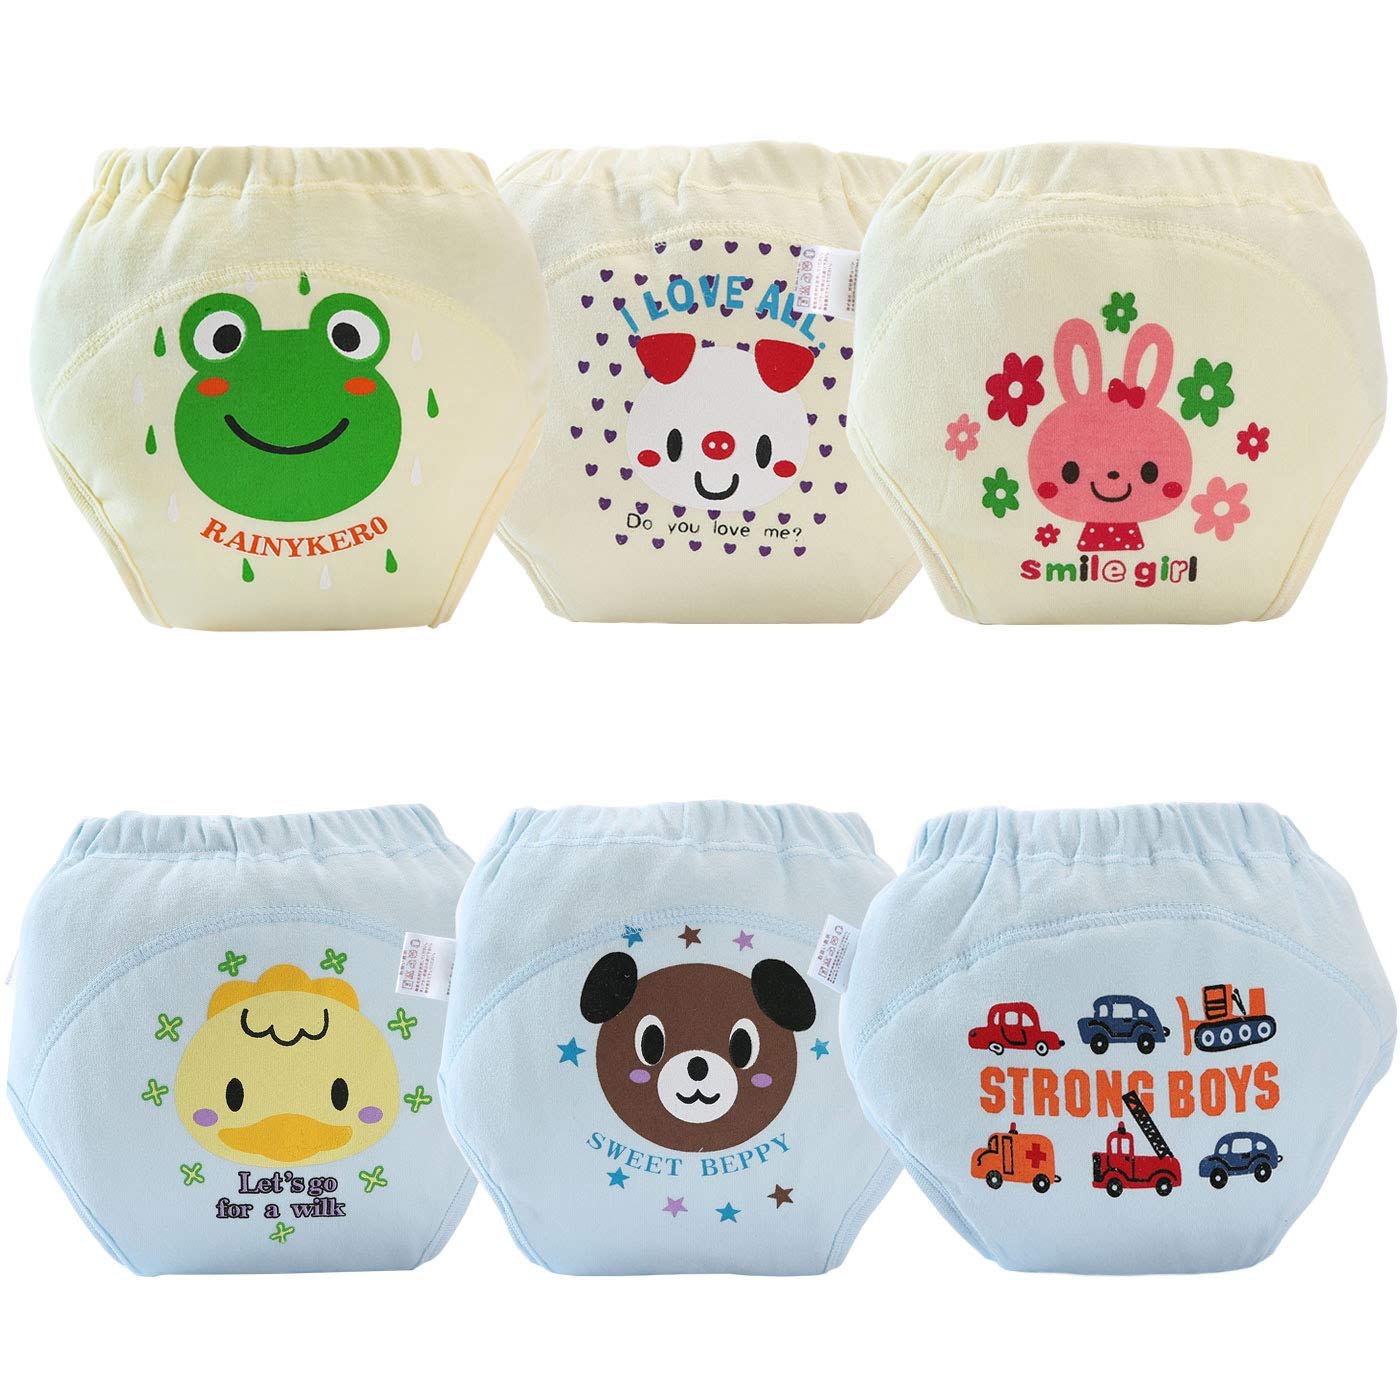 AUBIG Baby Training Underwear 4 Layers Thick Cotton Diaper Pants Pack of 6 H101FMW0001-03